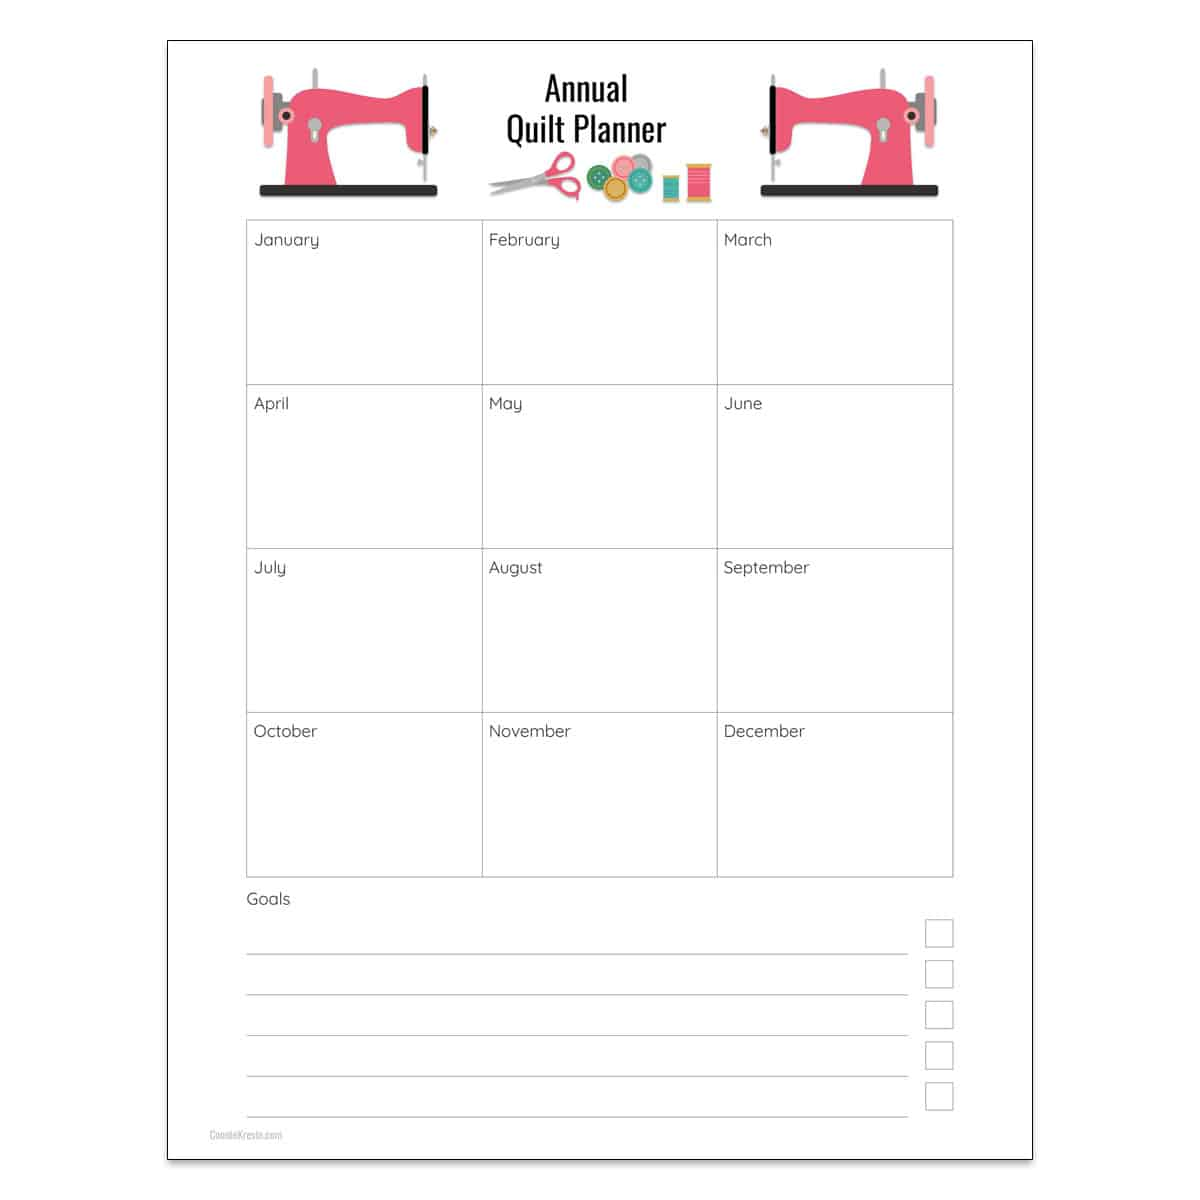 Annual quilt planner